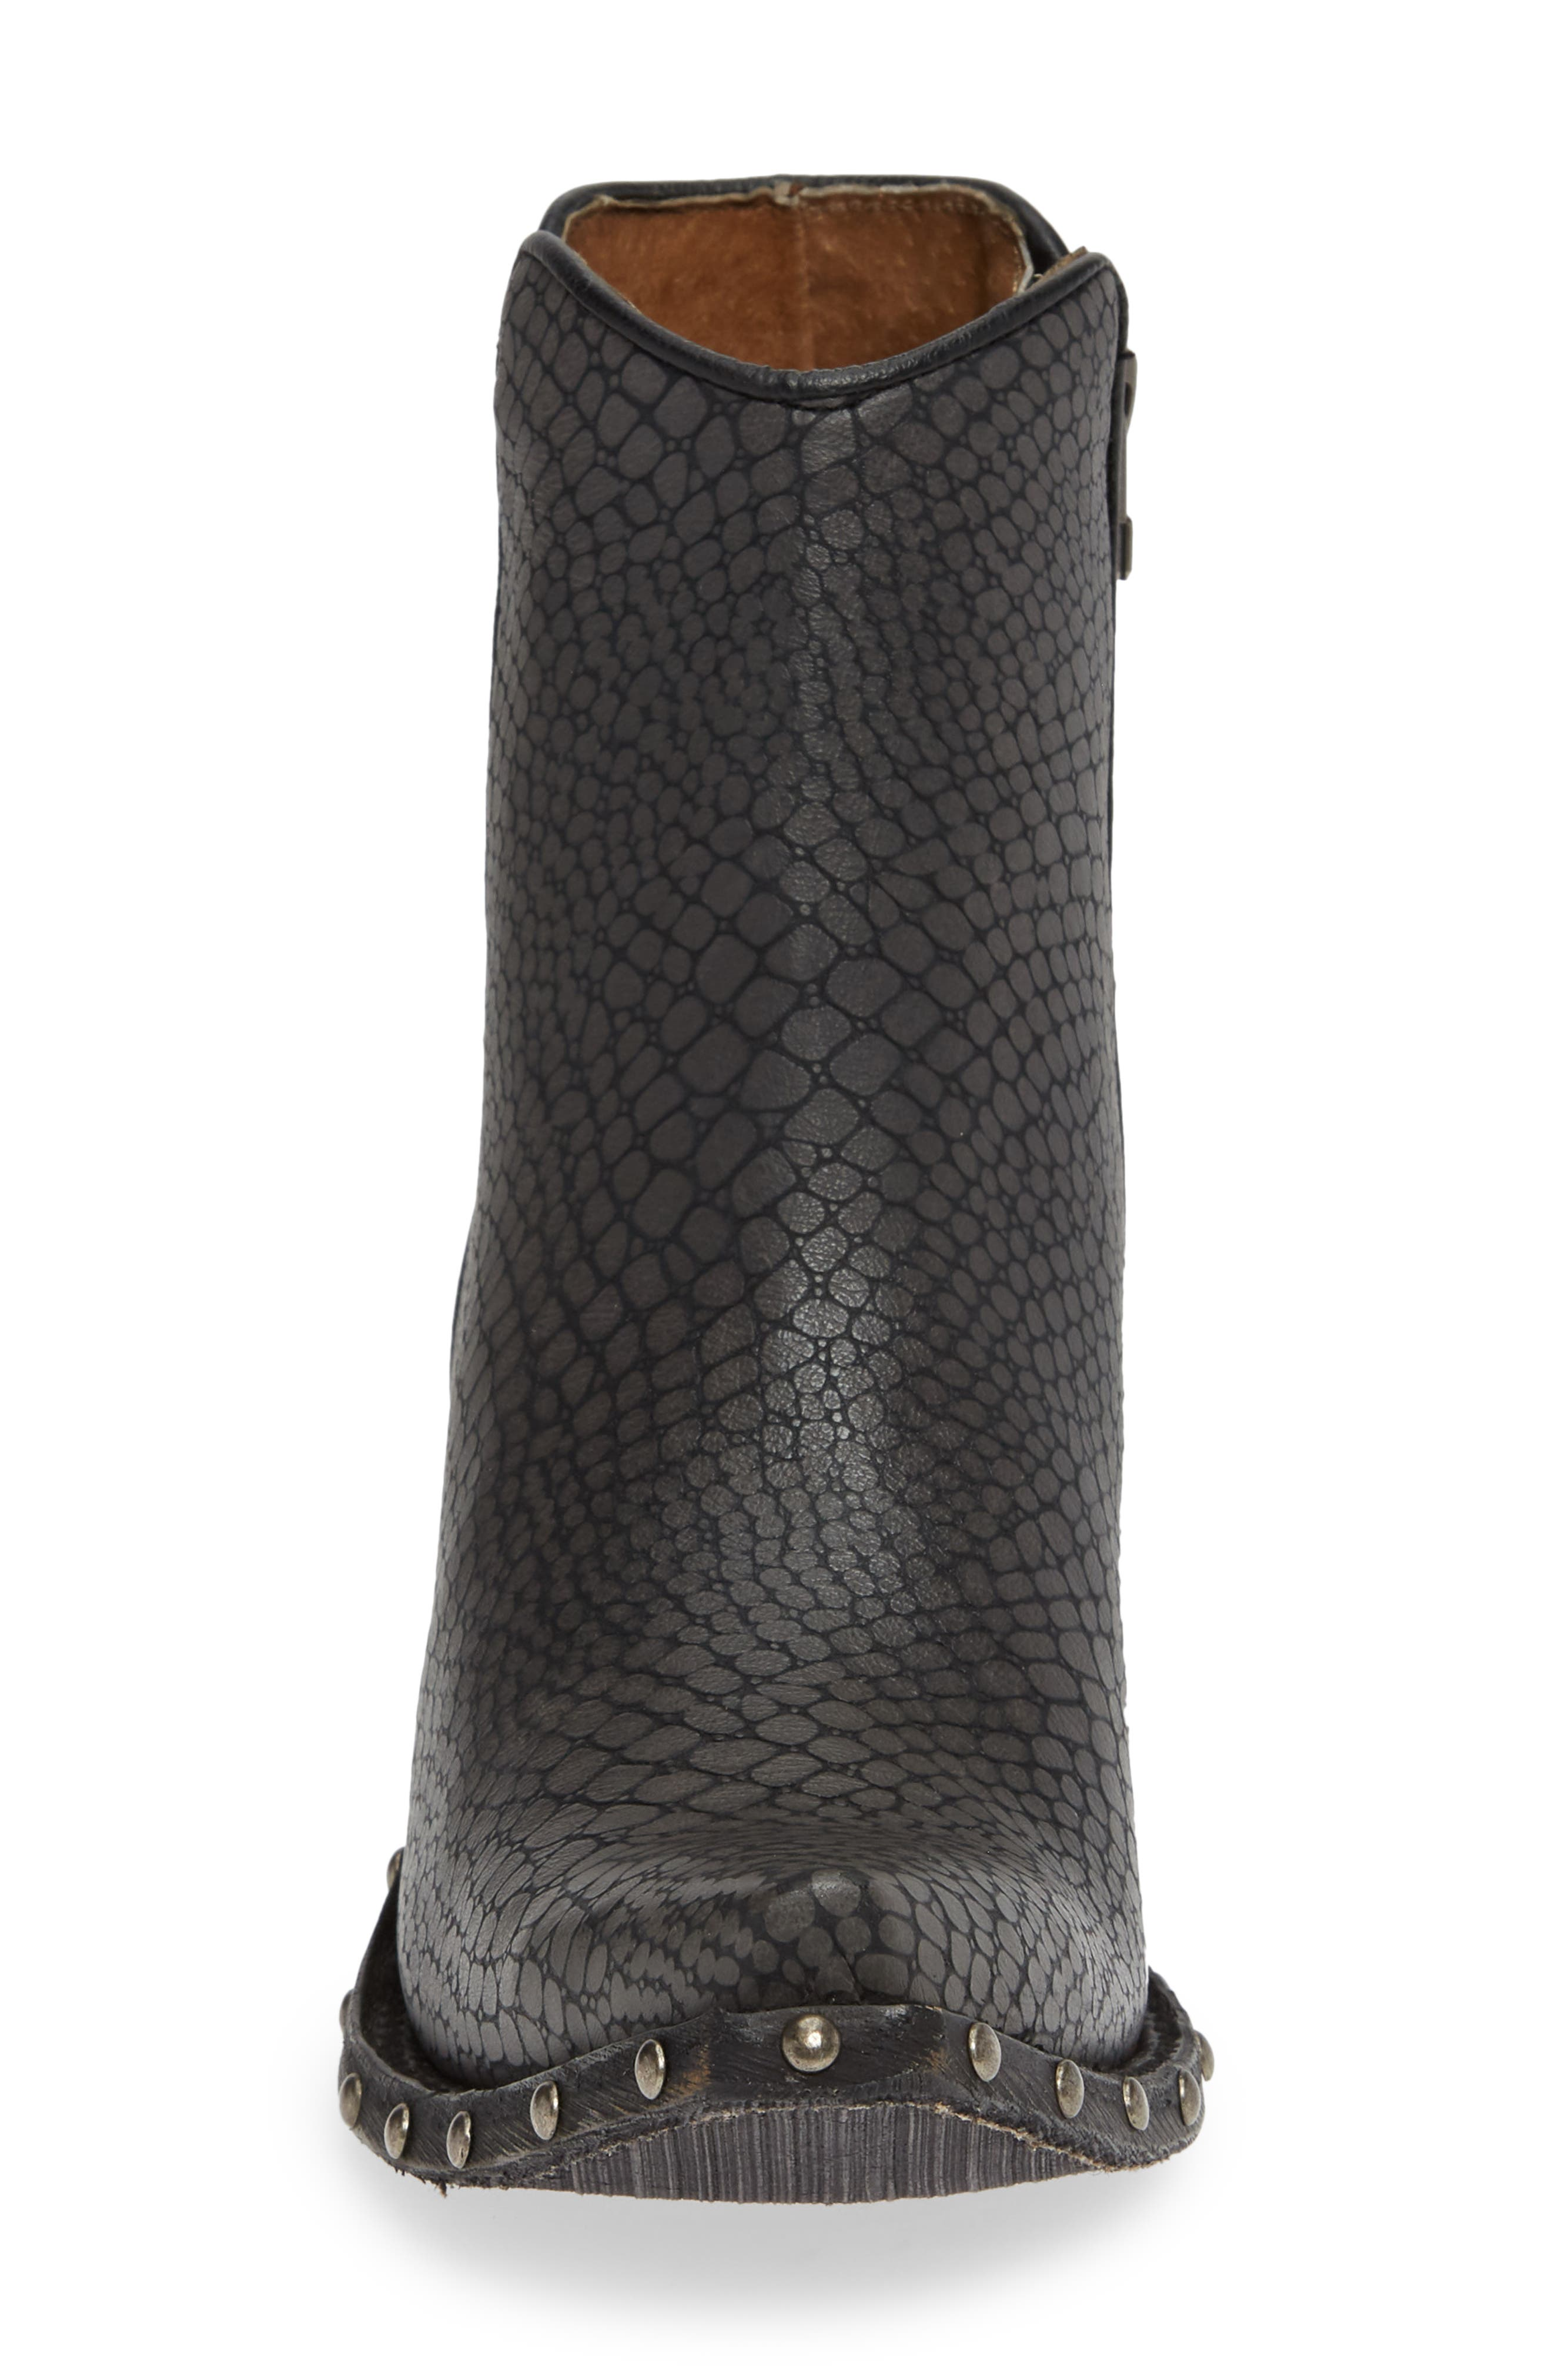 ARIAT, Fenix Western Bootie, Alternate thumbnail 4, color, CHIC GREY CRACKLED TAN LEATHER